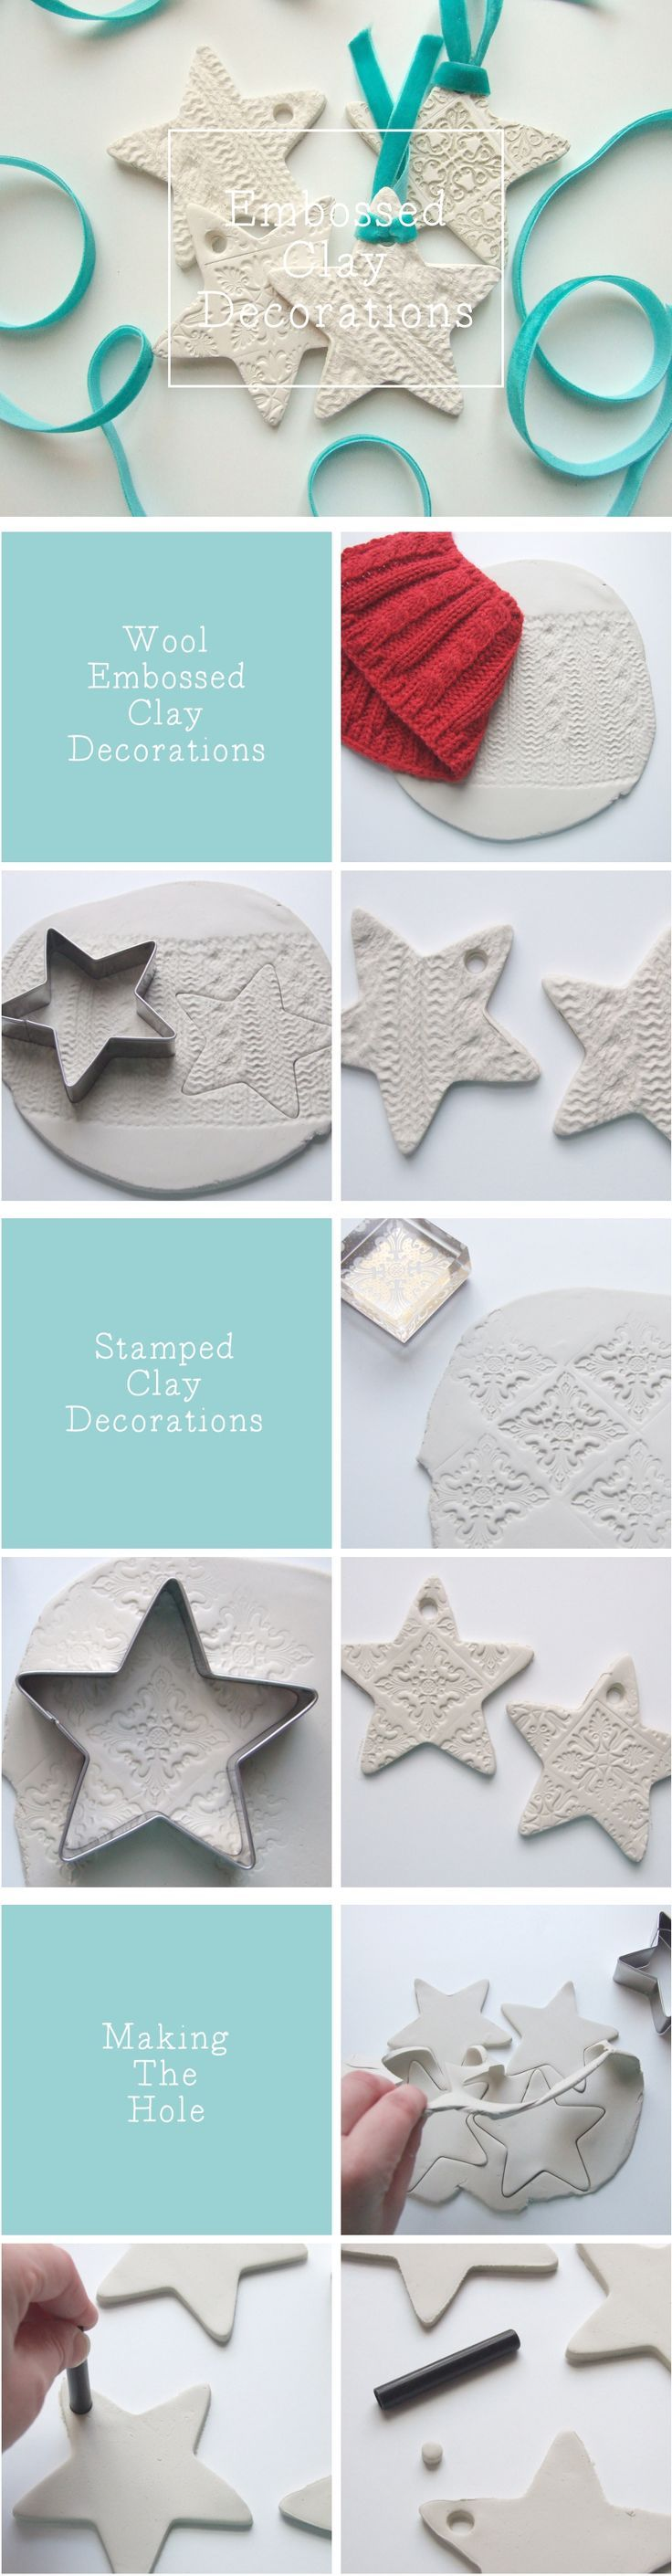 Embossed clay Christmas tags and ornaments! All you need is air dry clay, cookie cutters, a rolling pin, and some cool things to make impressions into the clay like ribbons, wool, doilies, or stamps! Love.